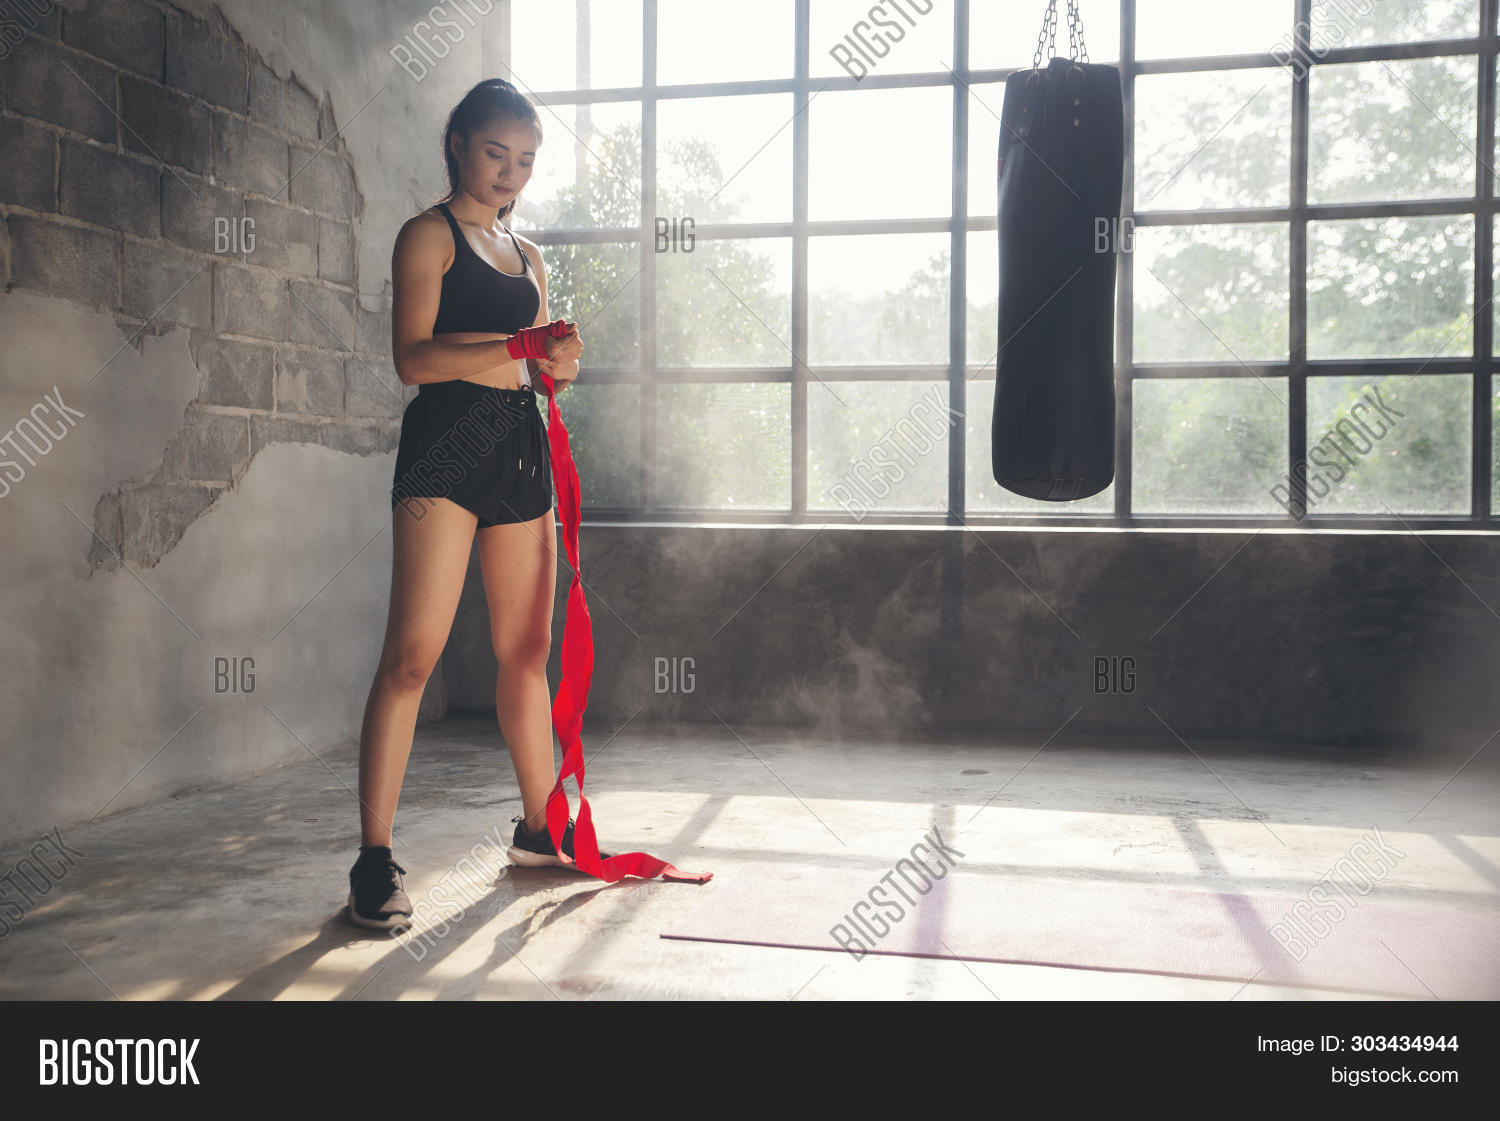 athlete,athletic,attractive,background,beautiful,body,boxer,boxing,cardio,club,competitive,concept,defense,exercise,female,fighter,fighting,fit,fitness,girl,gym,hard,healthy,kick,kickboxing,lifestyle,mma,model,muay,muscle,muscular,people,person,portrait,power,prepare,punching,session,sport,sportswear,strap,strength,strengthen,strong,thai,training,woman,workout,yellow,young